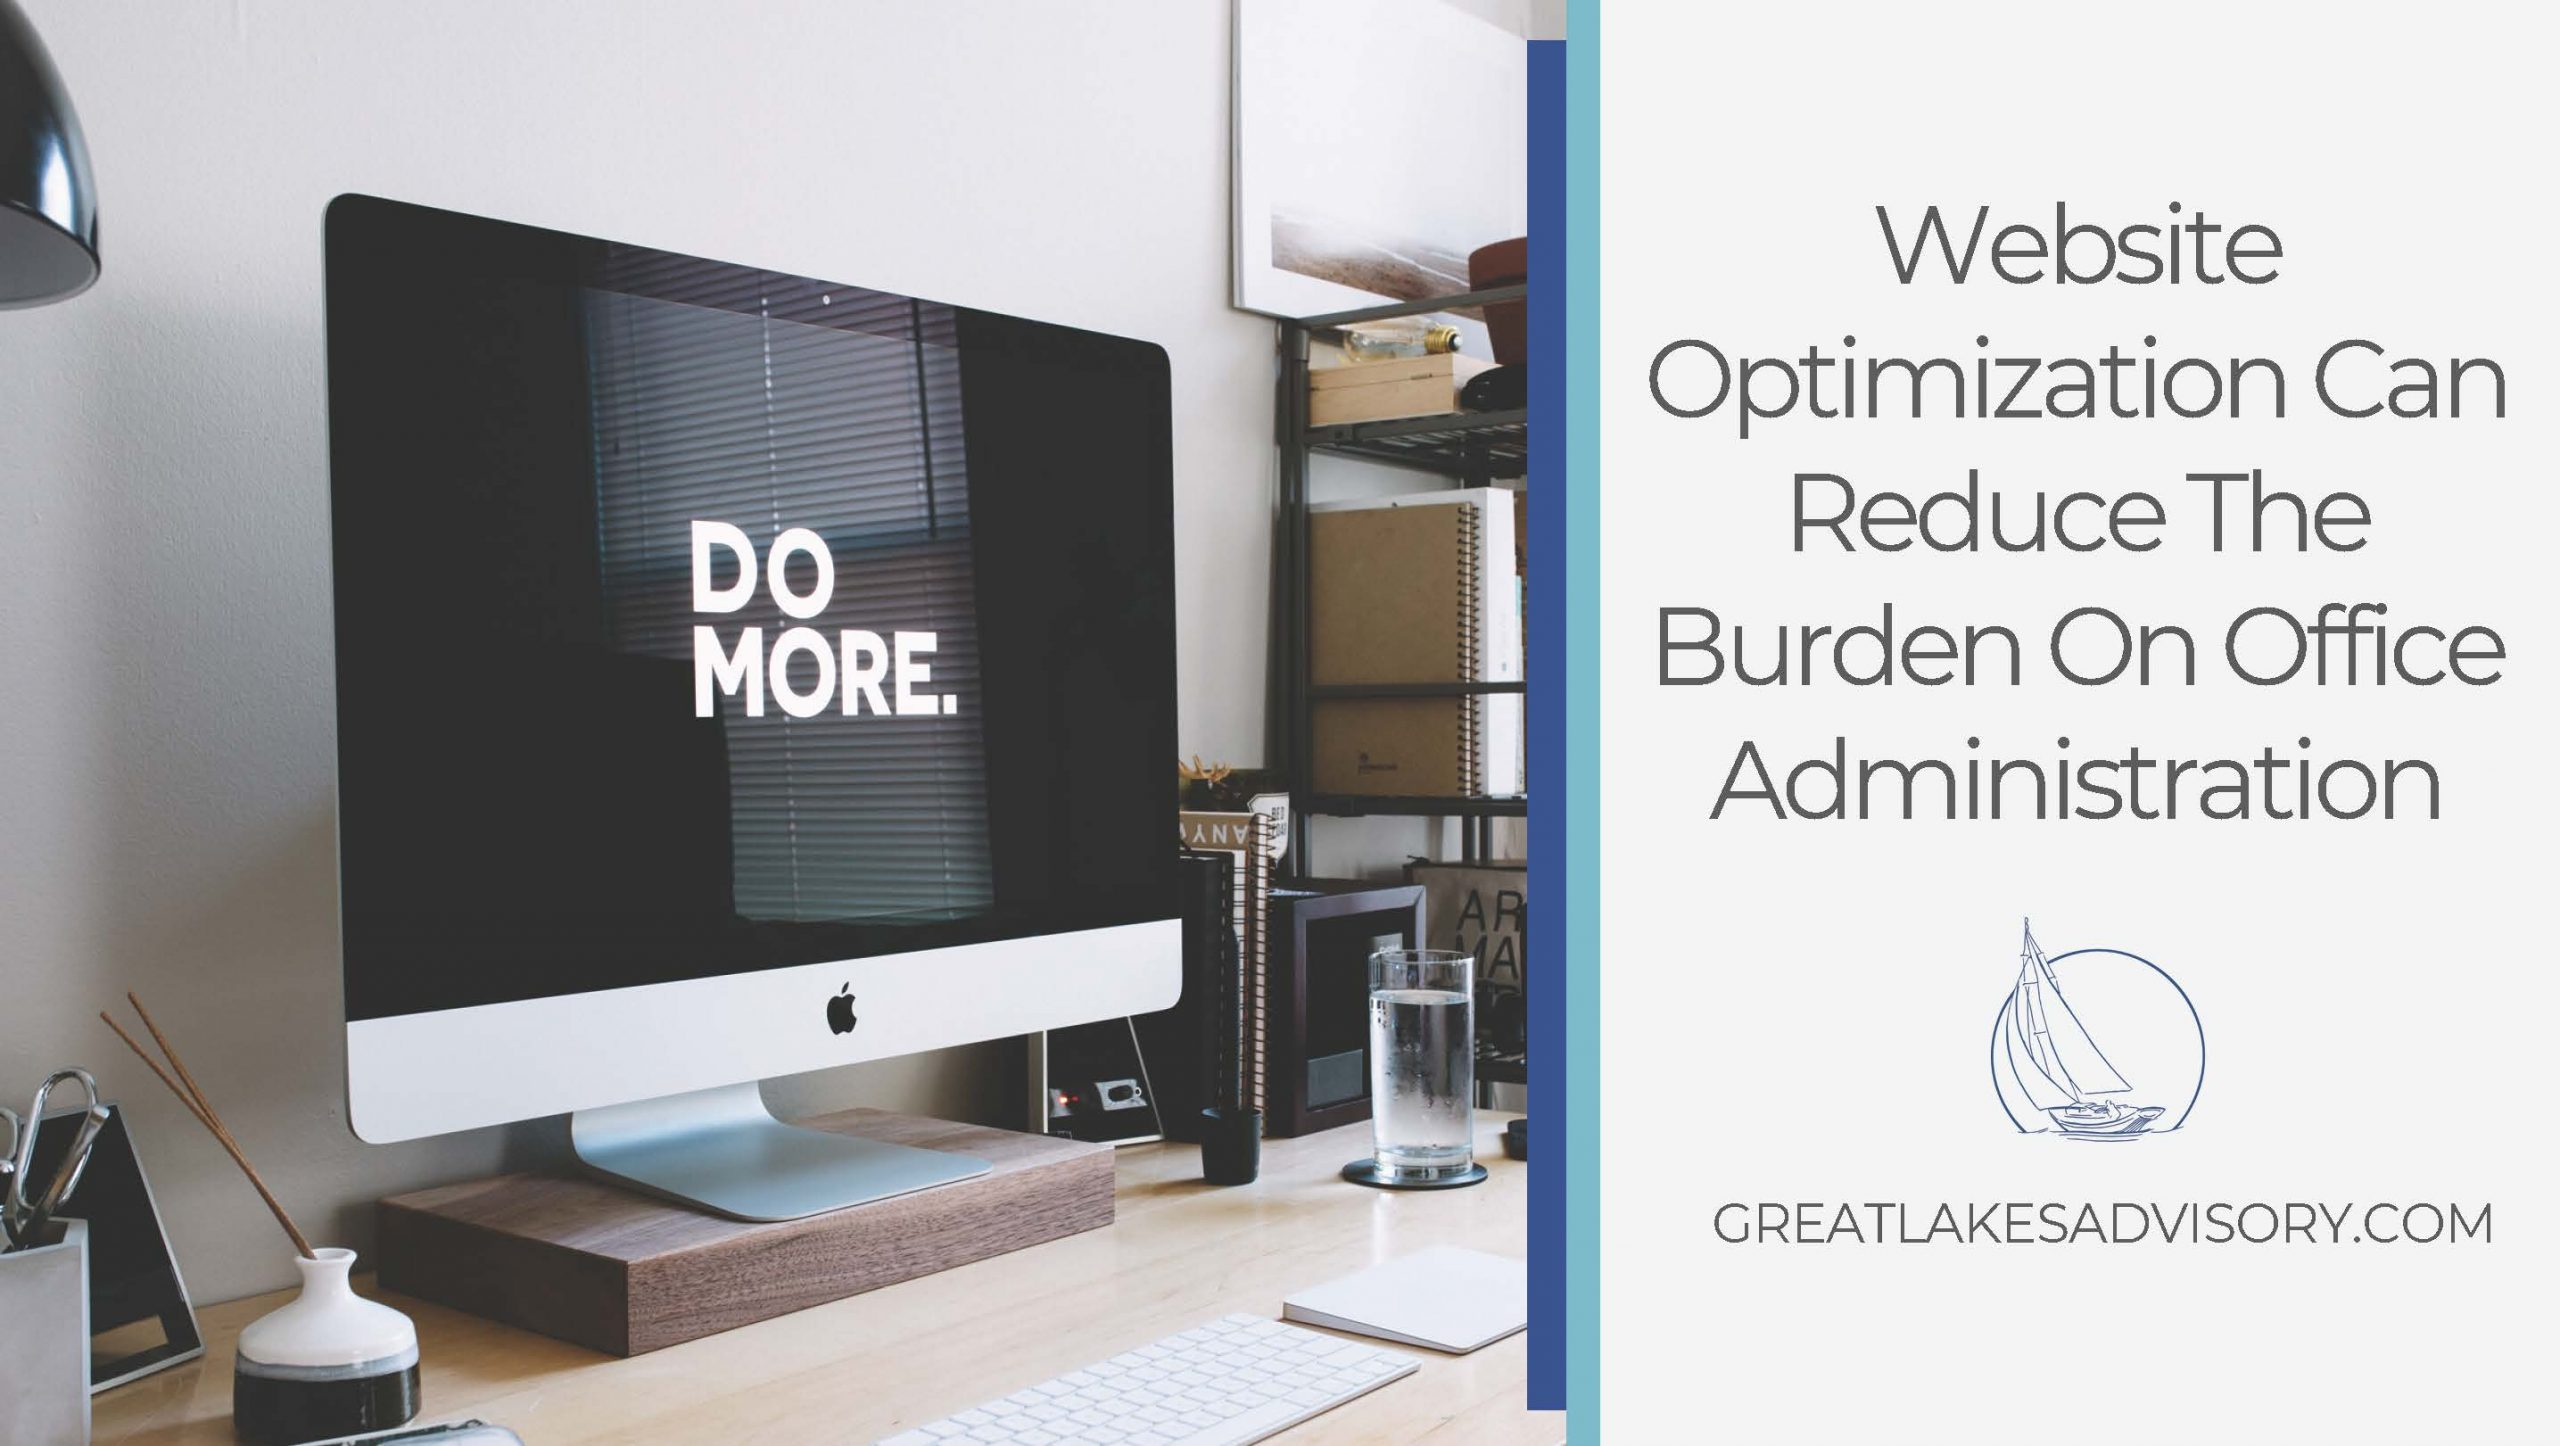 Website Optimization Can Reduce The Burden On Office Administration